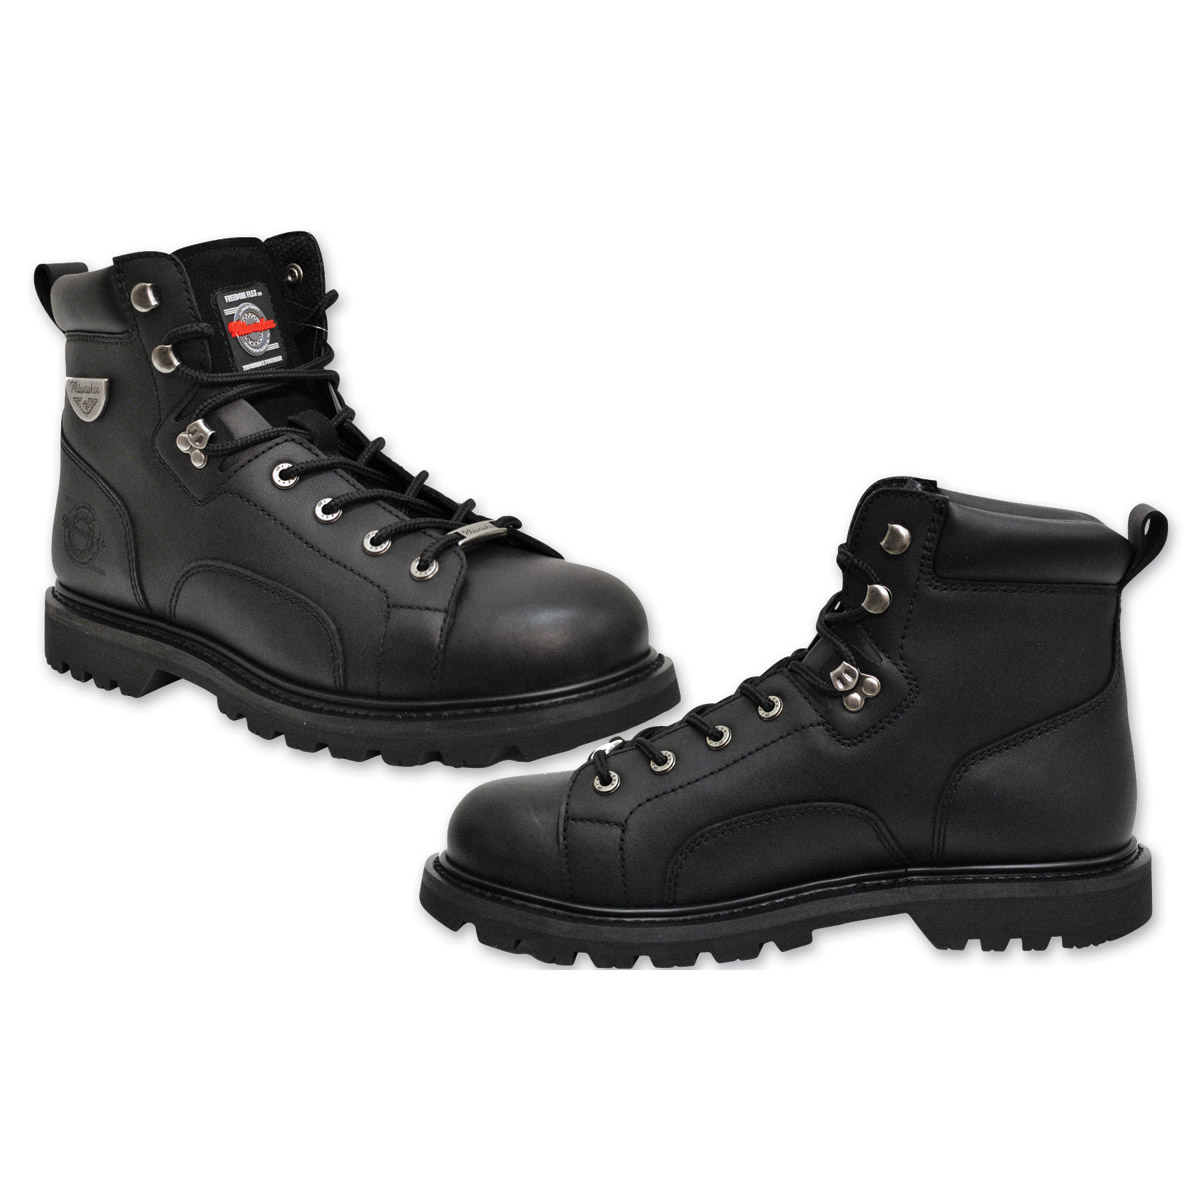 Milwaukee Motorcycle Clothing Co. Men's Nightrider Black Leather Boots